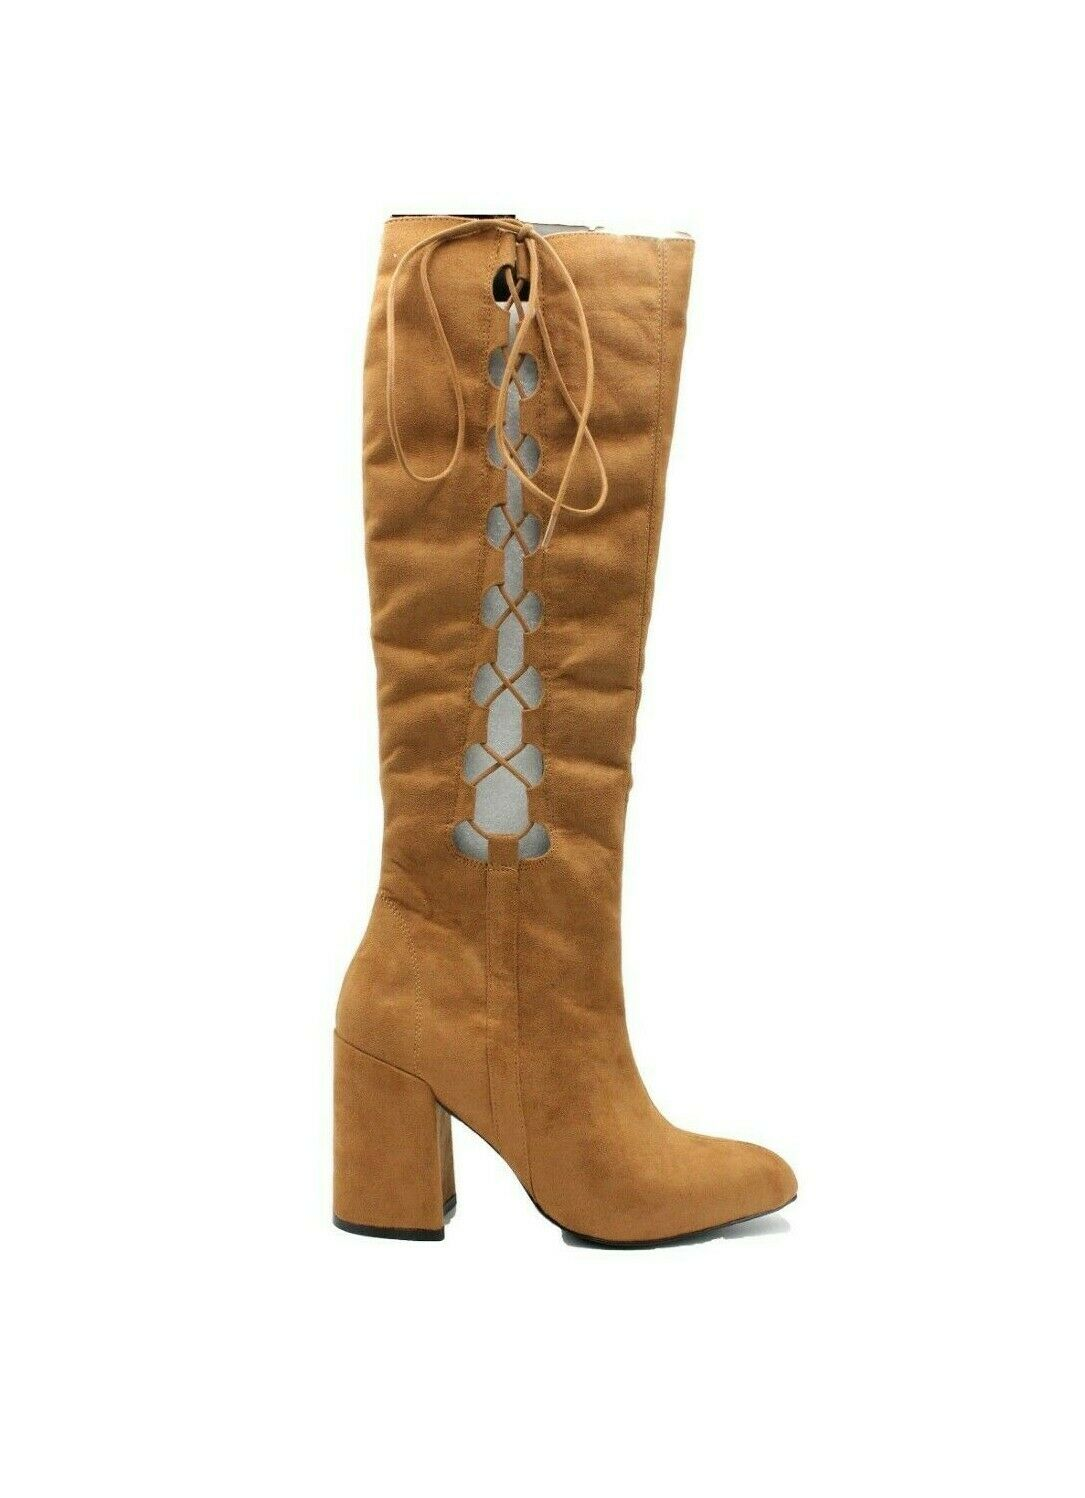 NASTY GAL Cognac Side Story Lace-Up Boots - Size 9 - NEW